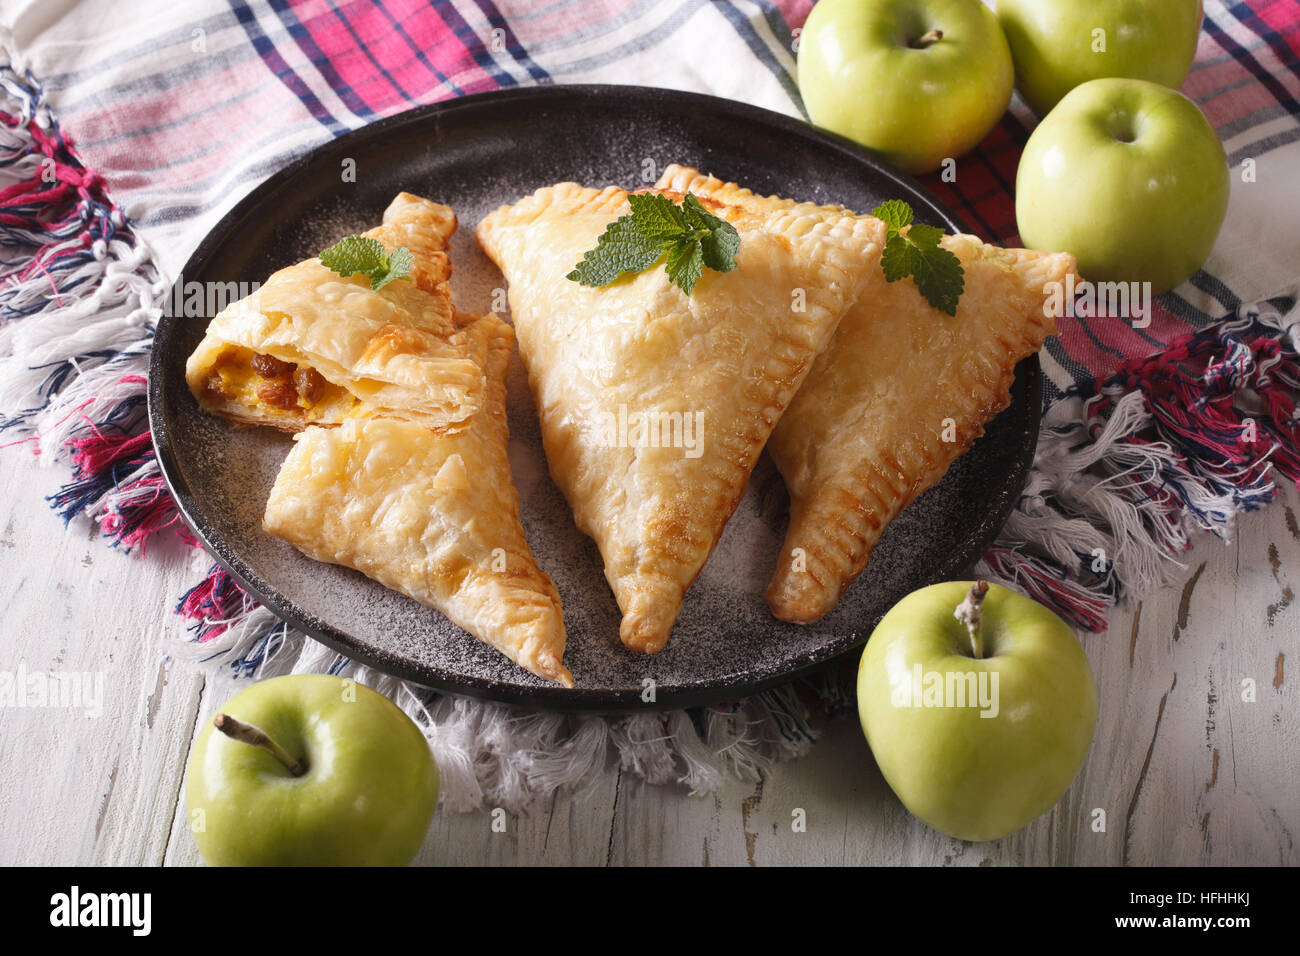 homemade turnover with apples close up on a plate. horizontal - Stock Image